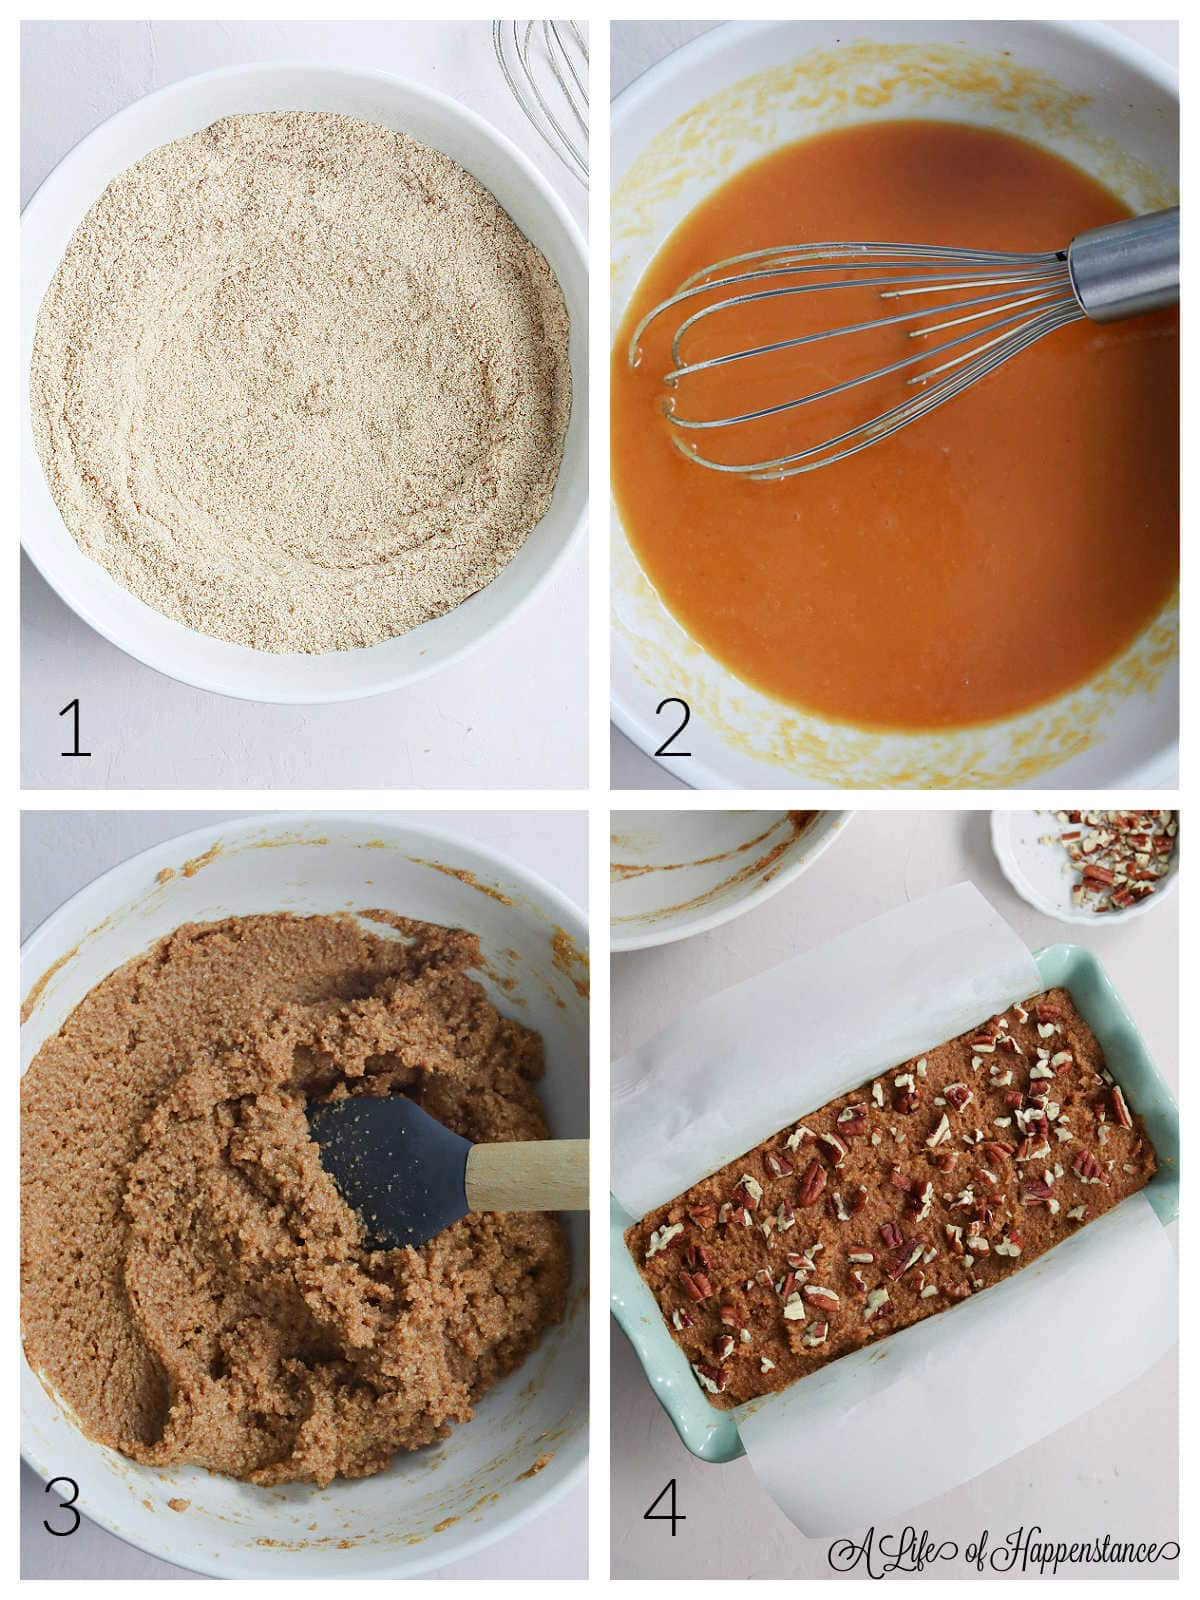 A four photo collage showing how to make the paleo pumpkin bread recipe. Photo one; dry ingredients in a white bowl. Photo two; wet ingredients in a white bowl with a silver whisk. photo three; the mixed batter in a white bowl. Photo four; the batter in a loaf pan with chopped pecans sprinkled on top.